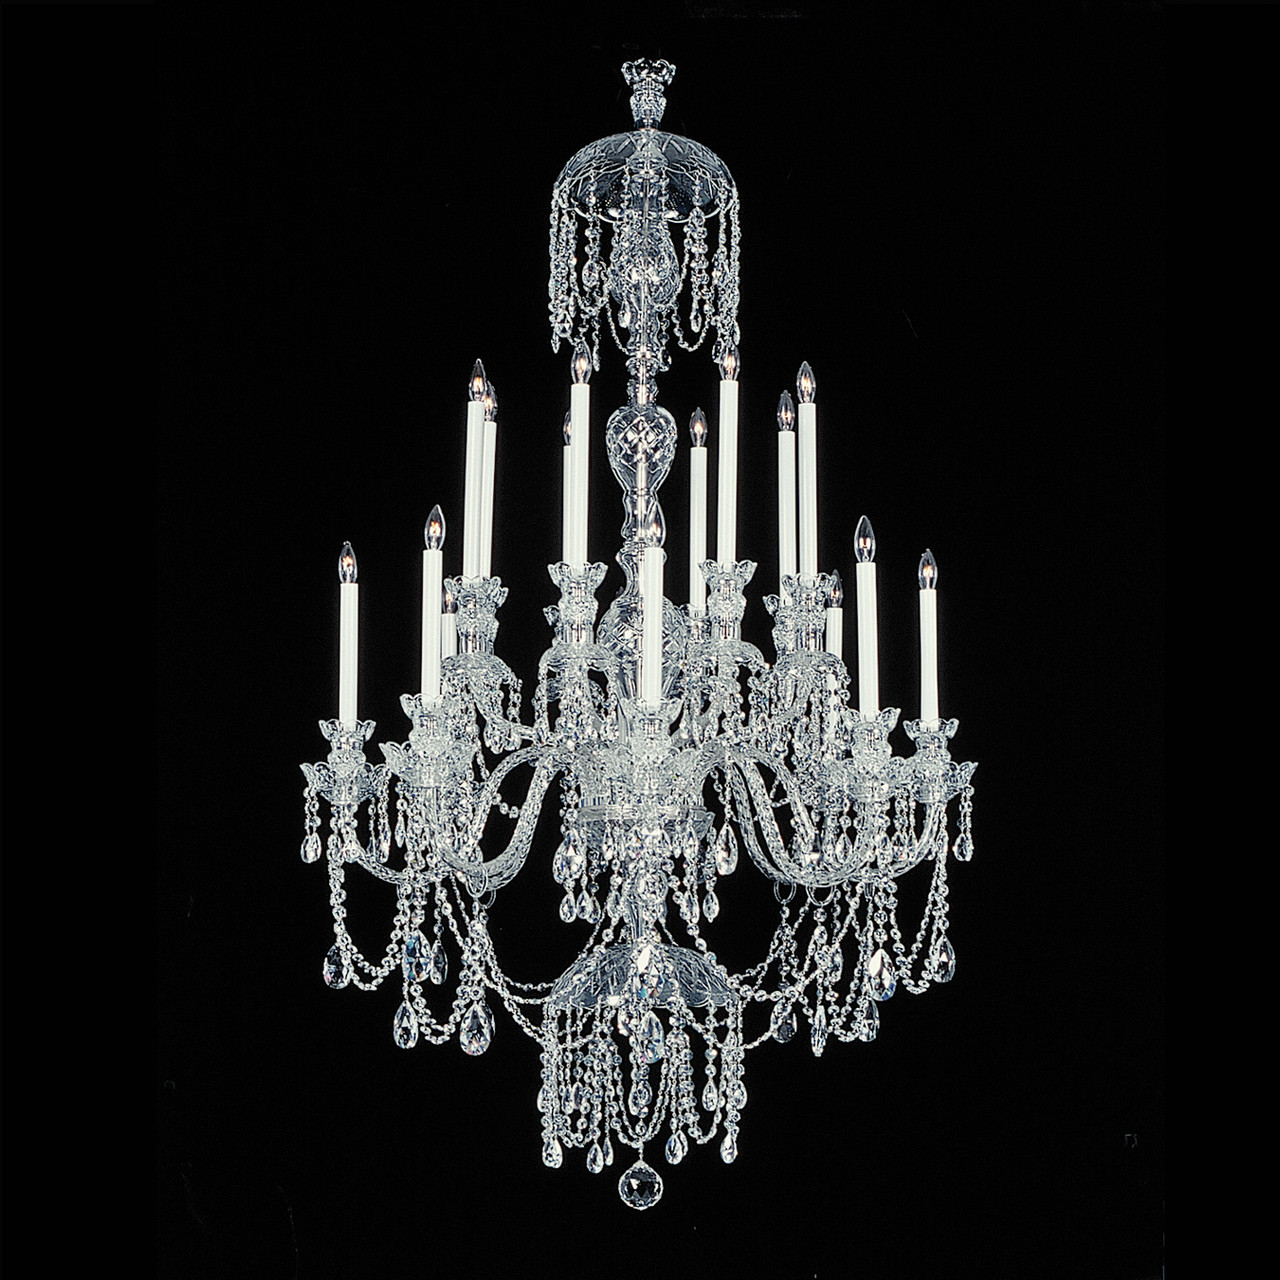 Chandelier Replacement Crystals | Chandelier Crystals | Rock Crystal Chandelier